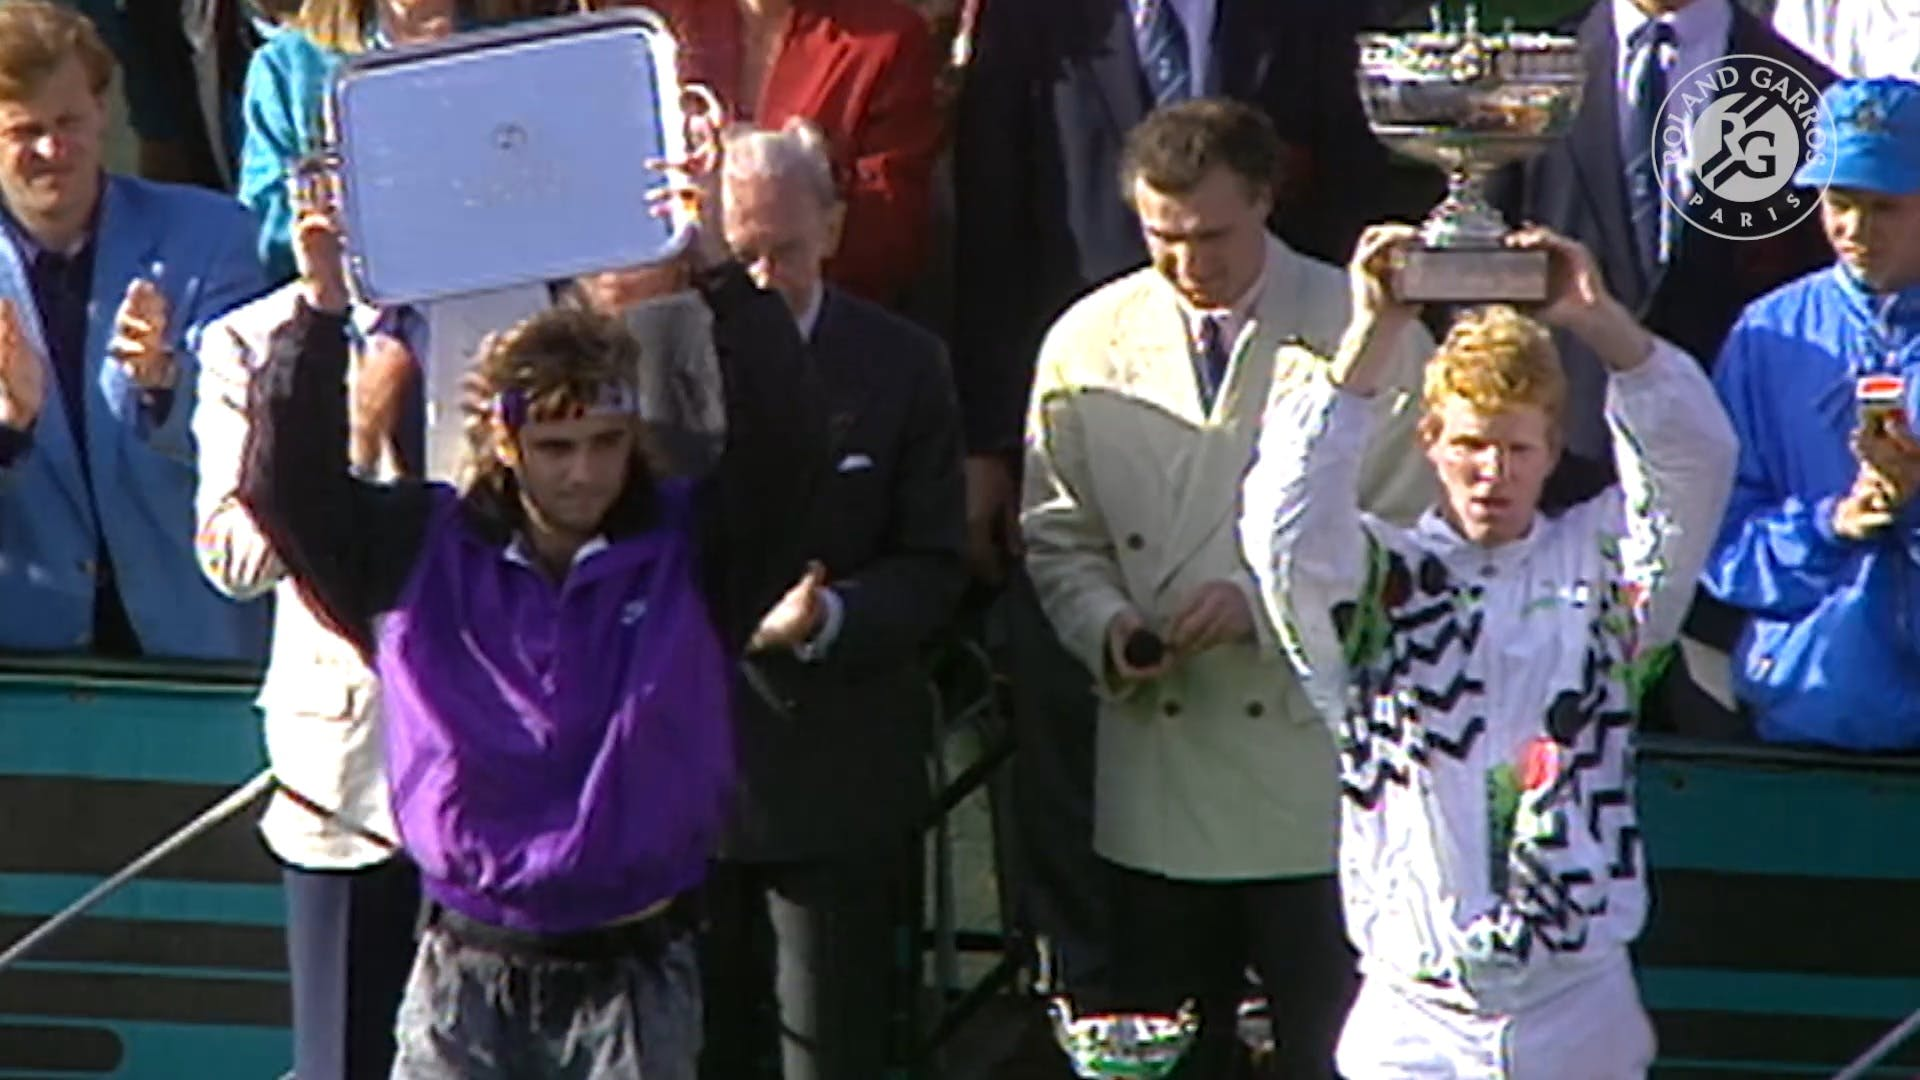 Andre Agassi and Jim Courier during the trophy ceremony at Roland-Garros 1991